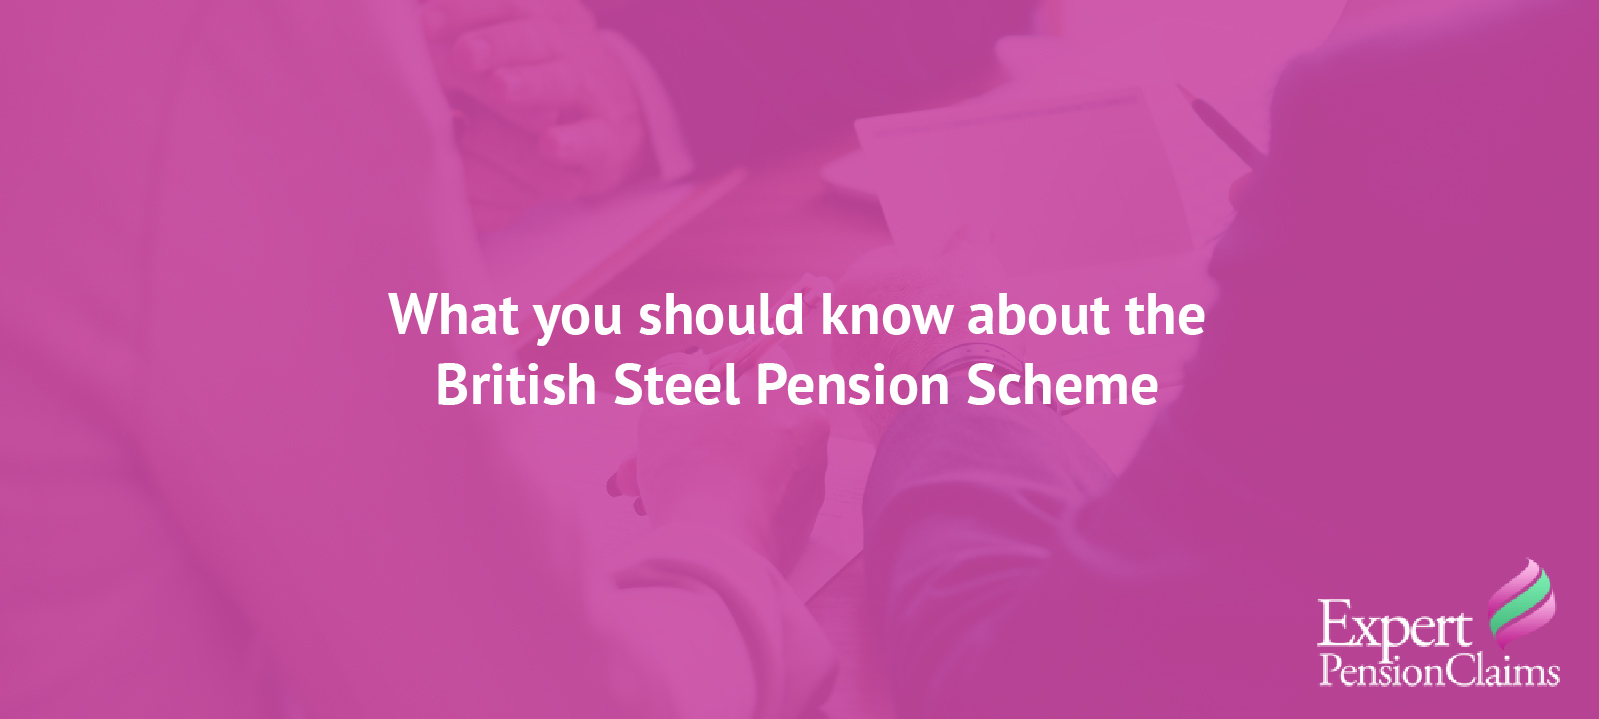 What you should know about the British Steel Pension Scheme